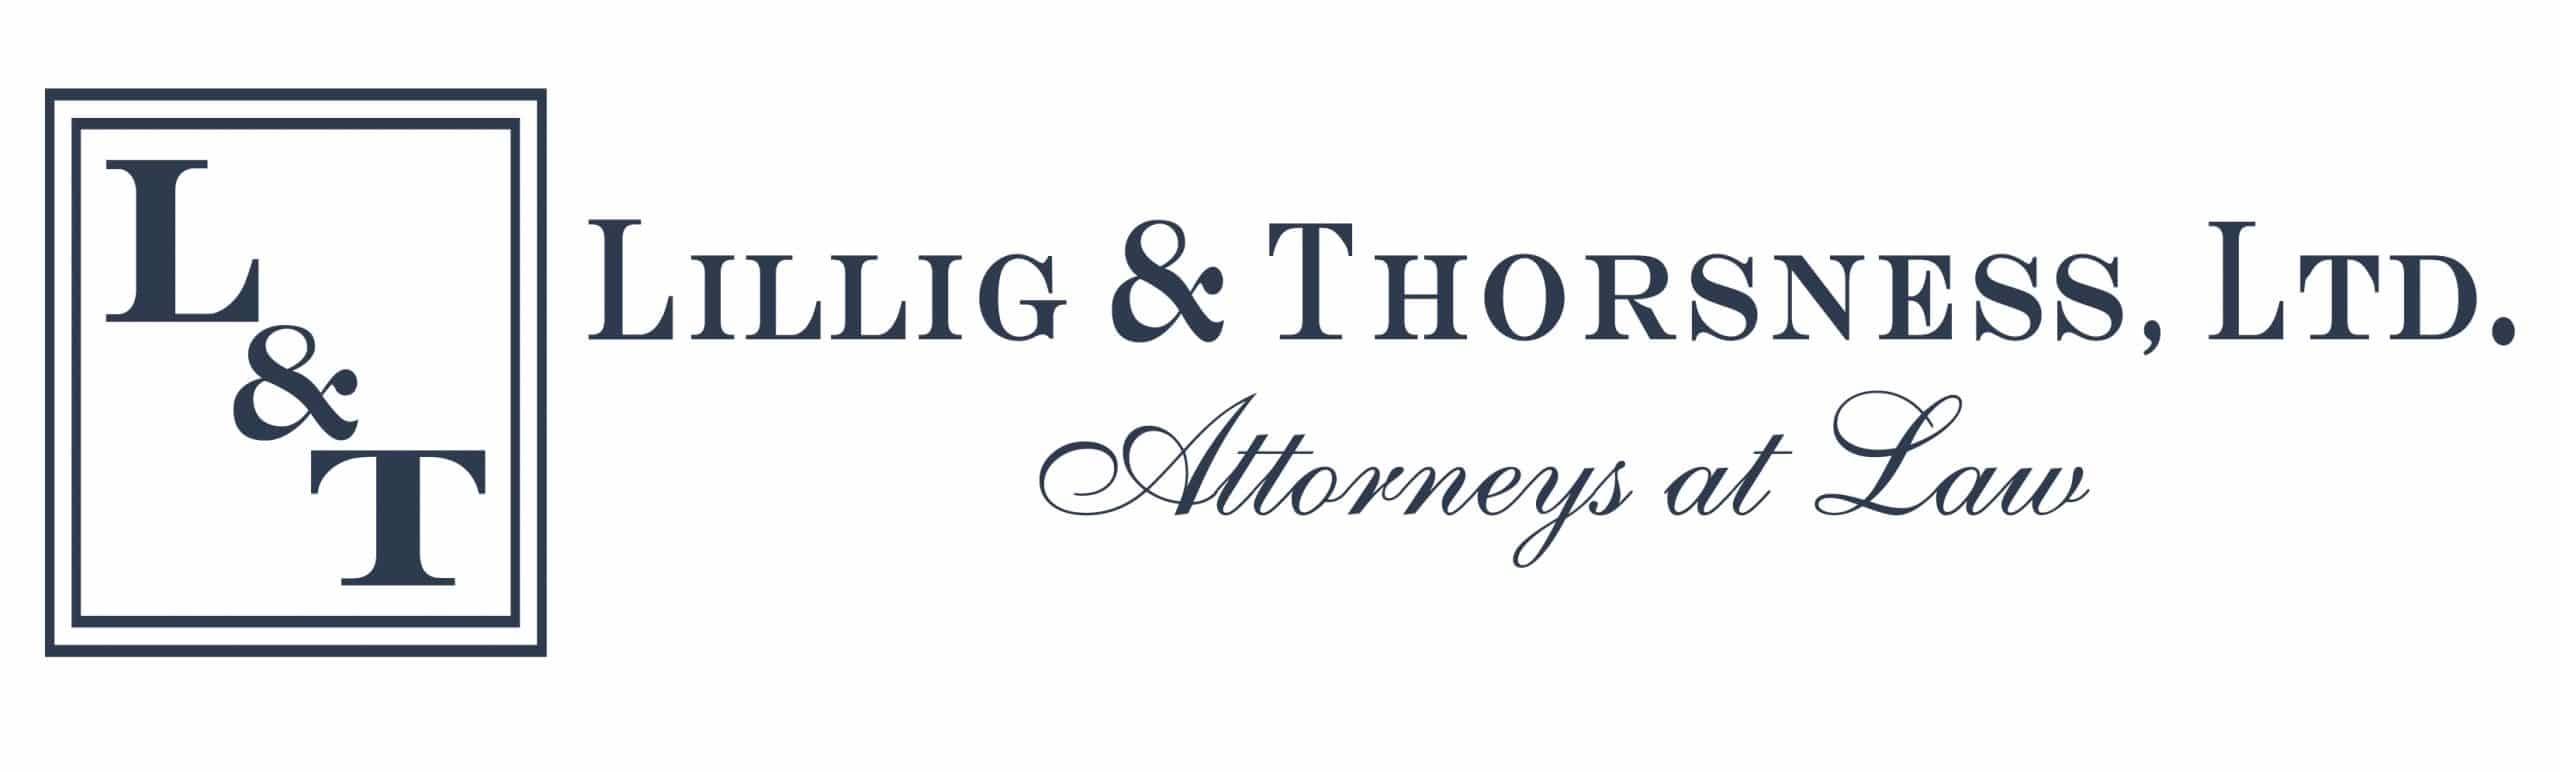 Lillig & Thorsness, Ltd.